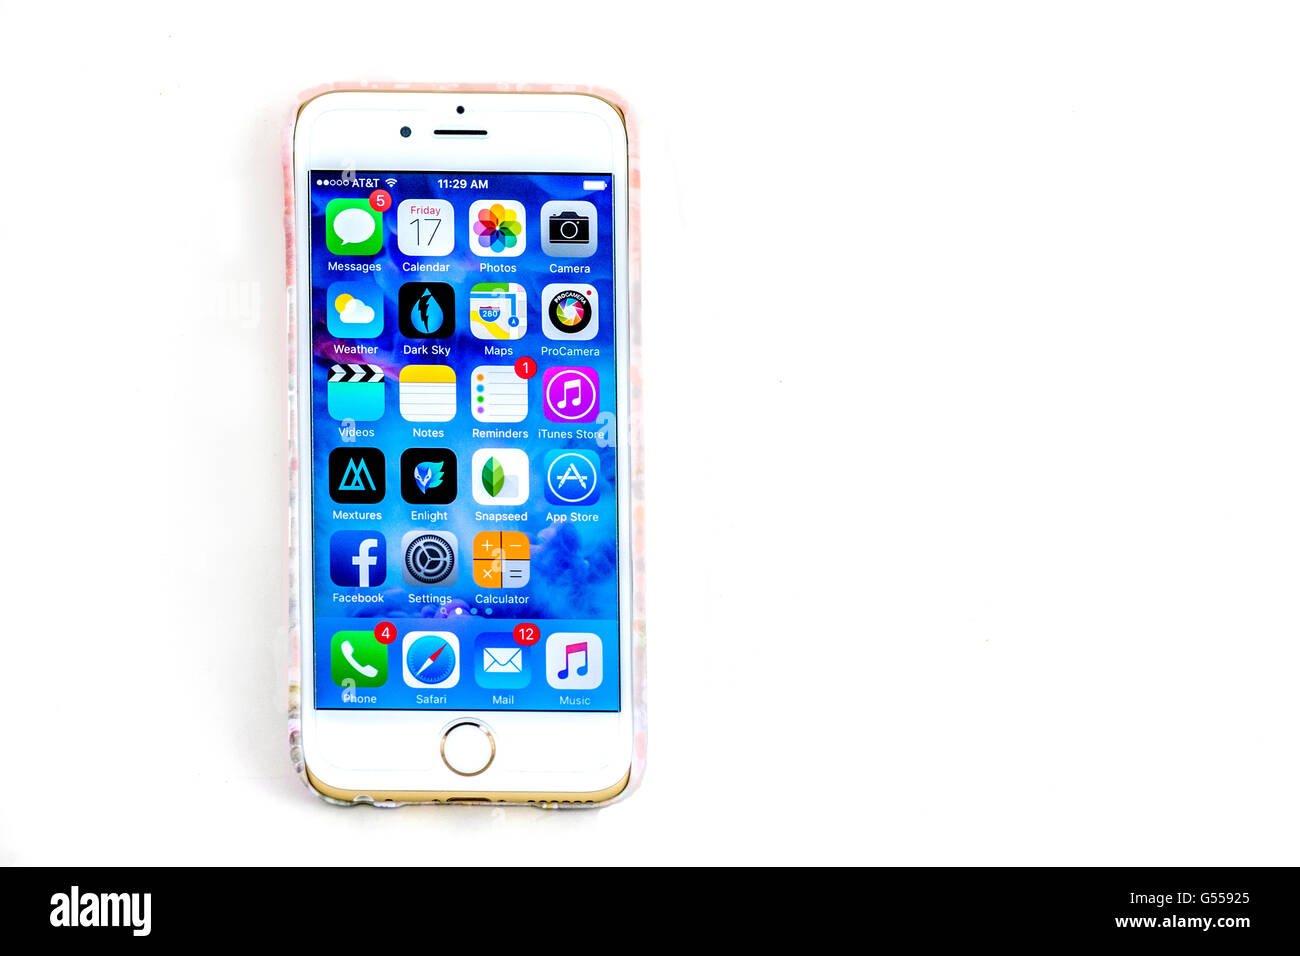 The screen of an iPhone 6s showing the home and app screen. Cutout. USA. - Stock Image